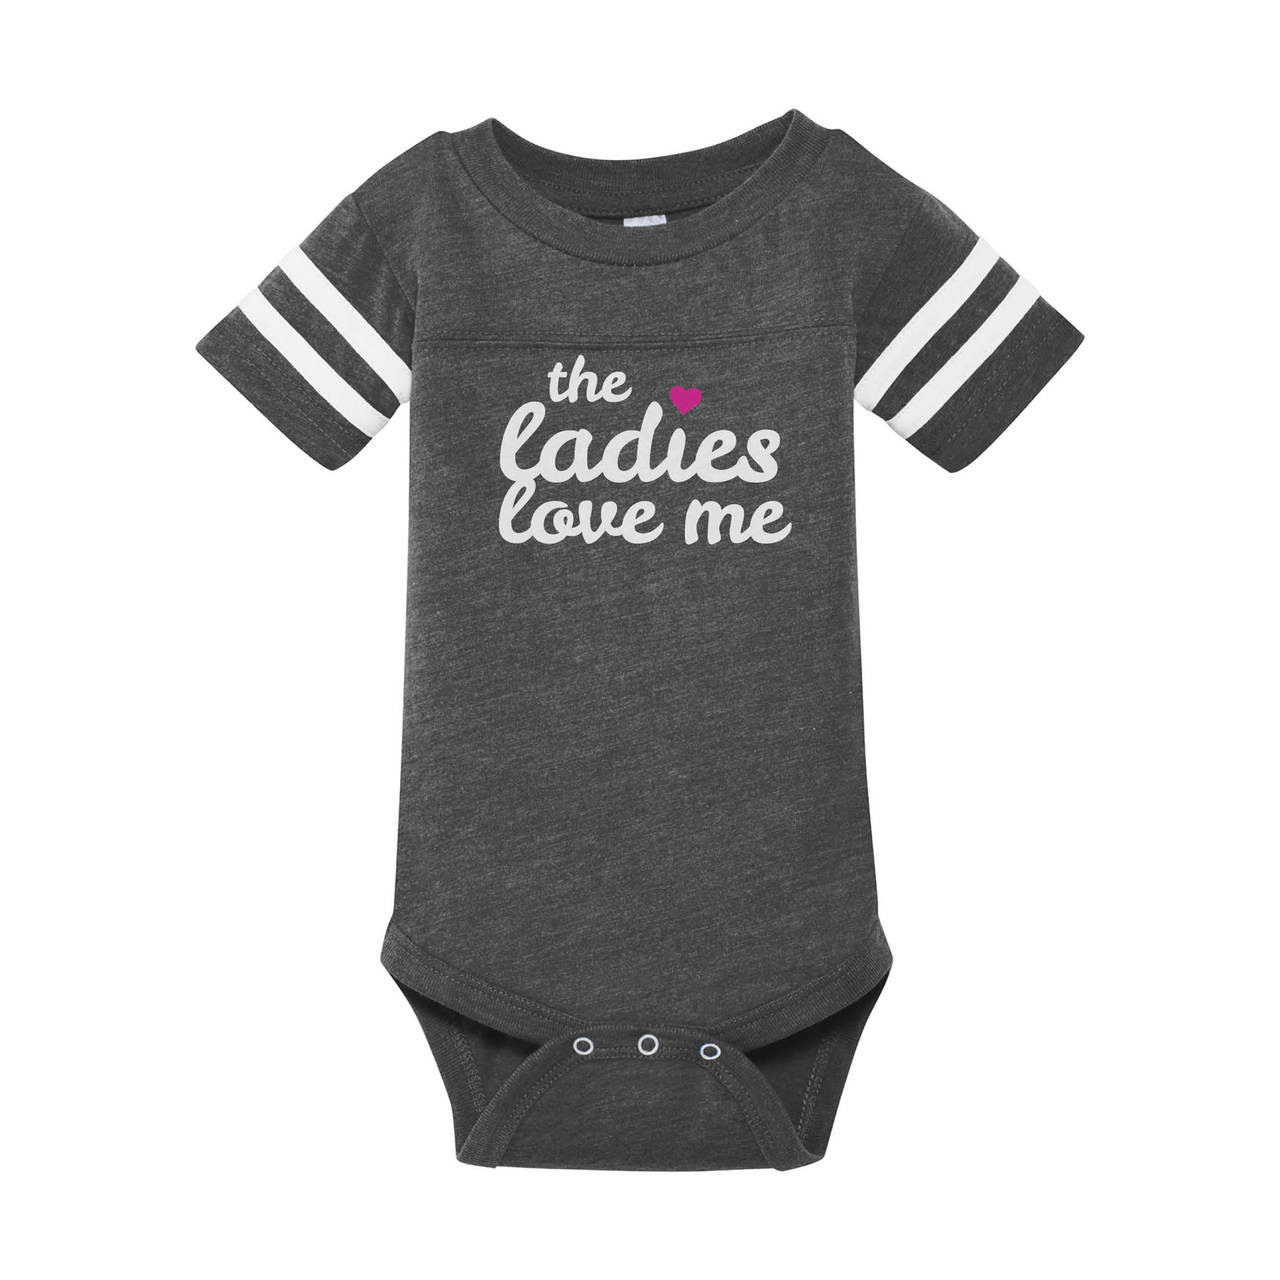 6622ef82e The Ladies Love Me infant onesie in heather grey with contrasting white on  sleeves.